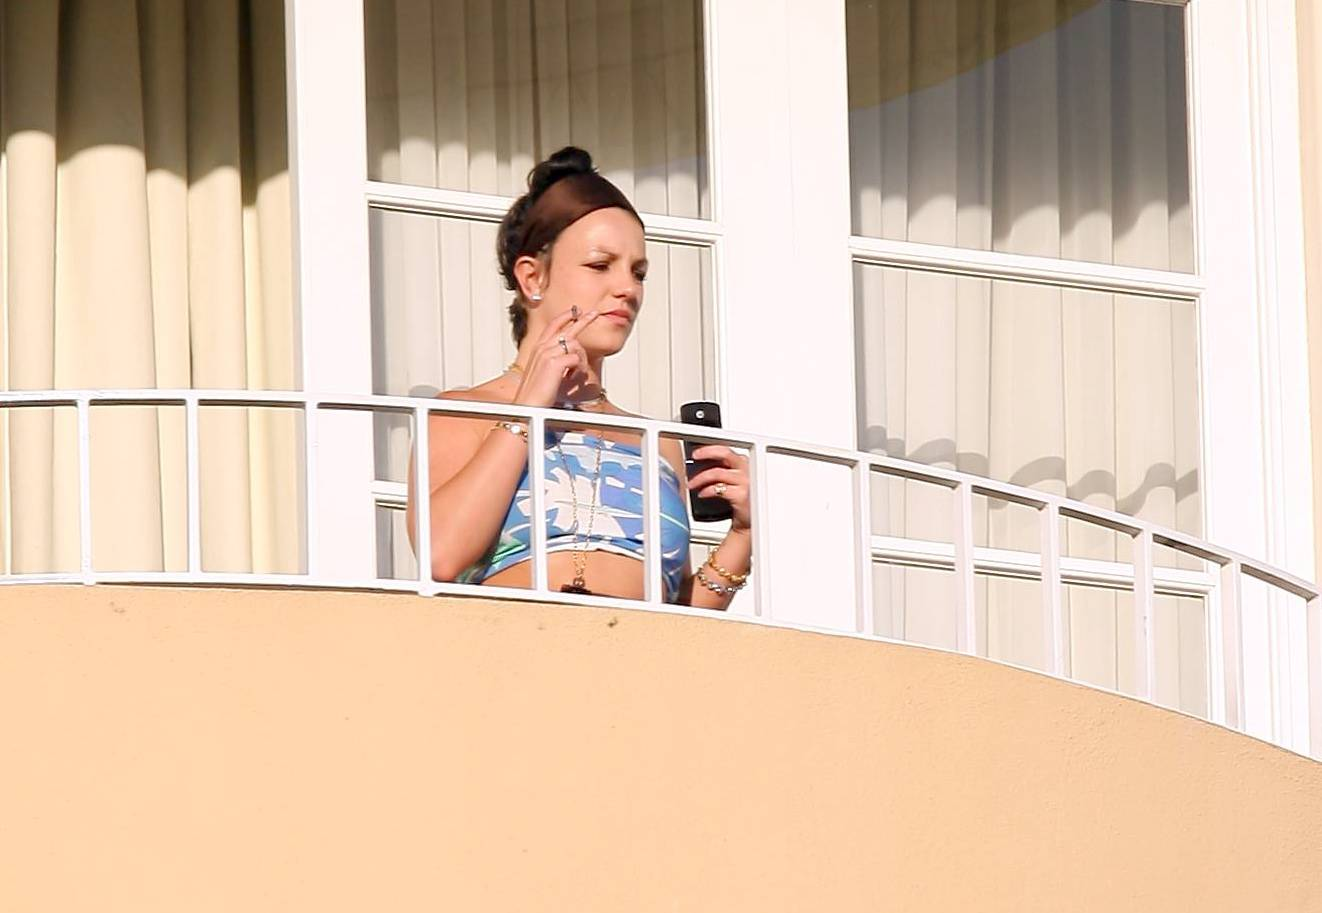 52793_celeb-city.eu_Britney_Spears_at_hotel_in_Beverly_Hills_03_123_833lo.jpg